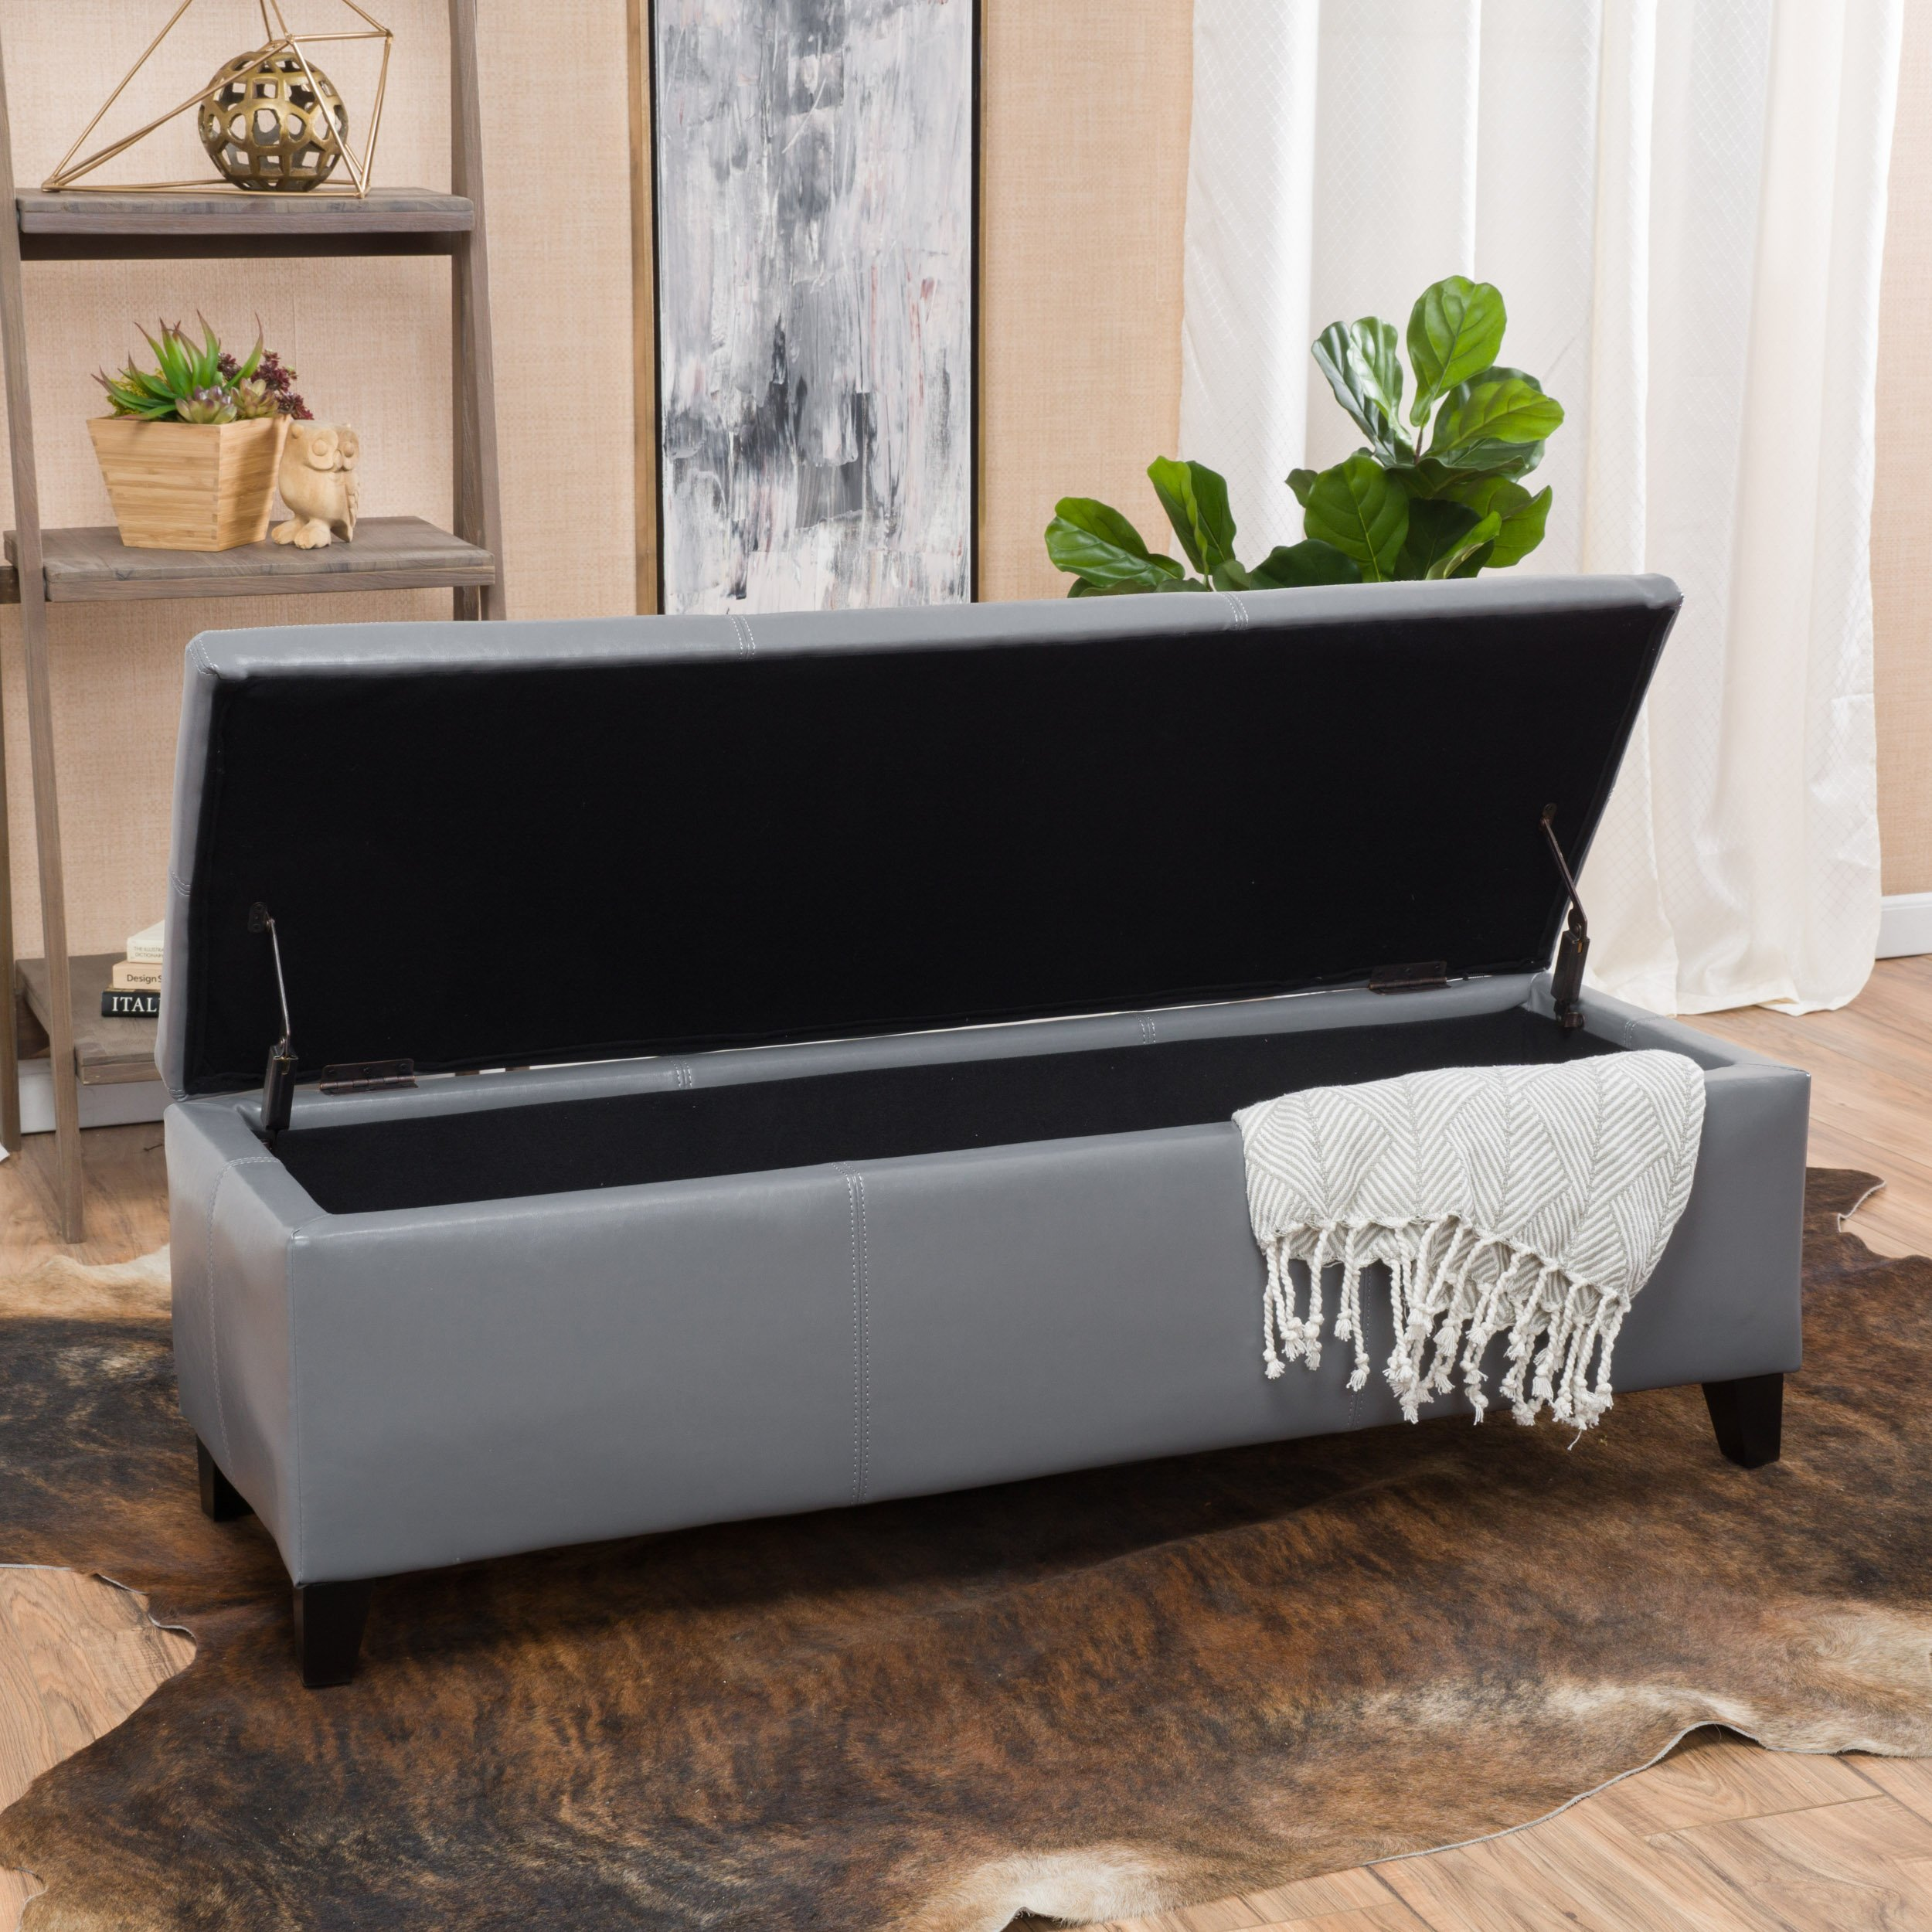 Christopher Knight Home 296845 Living Skyler Grey Leather Storage Ottoman Bench by Christopher Knight Home